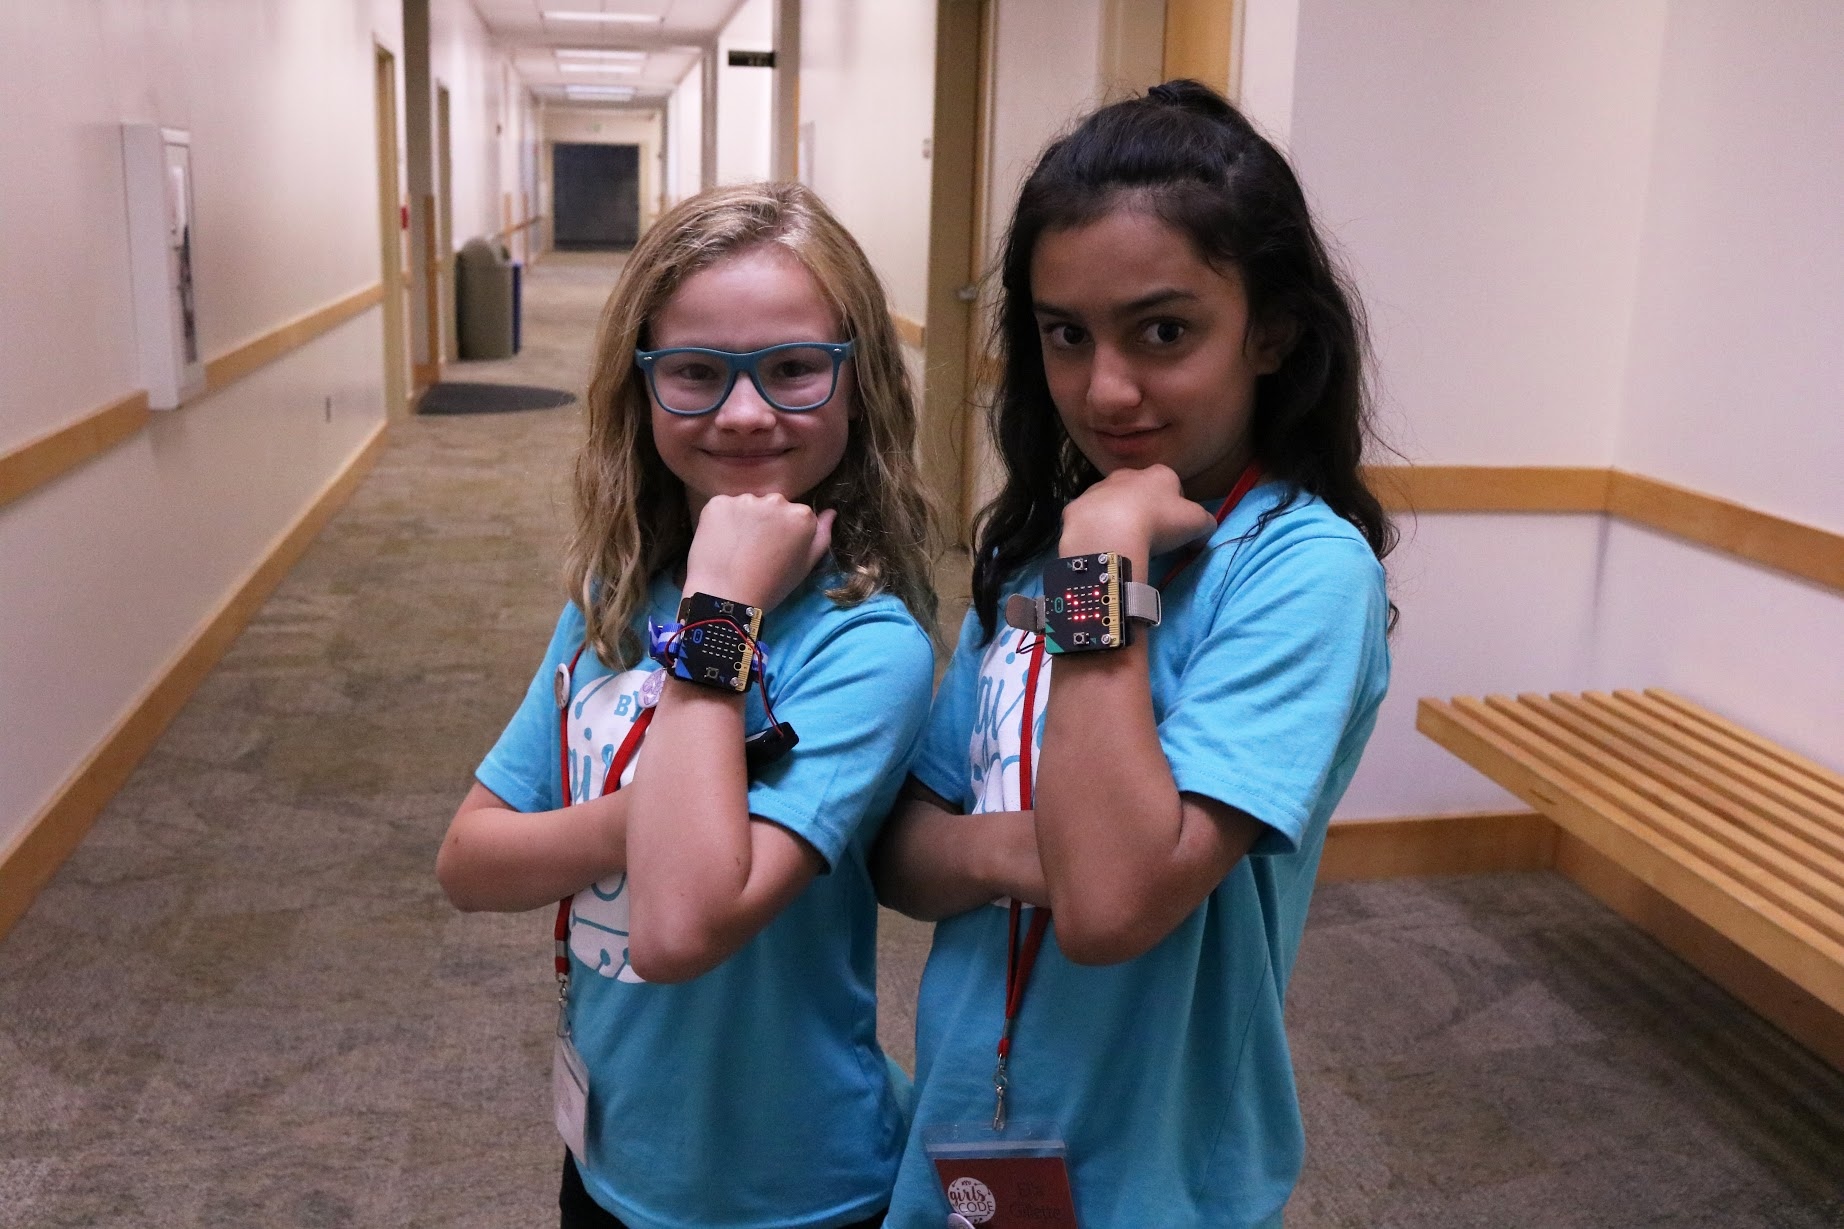 BYU youth camps encourage girls' participation in STEM fields